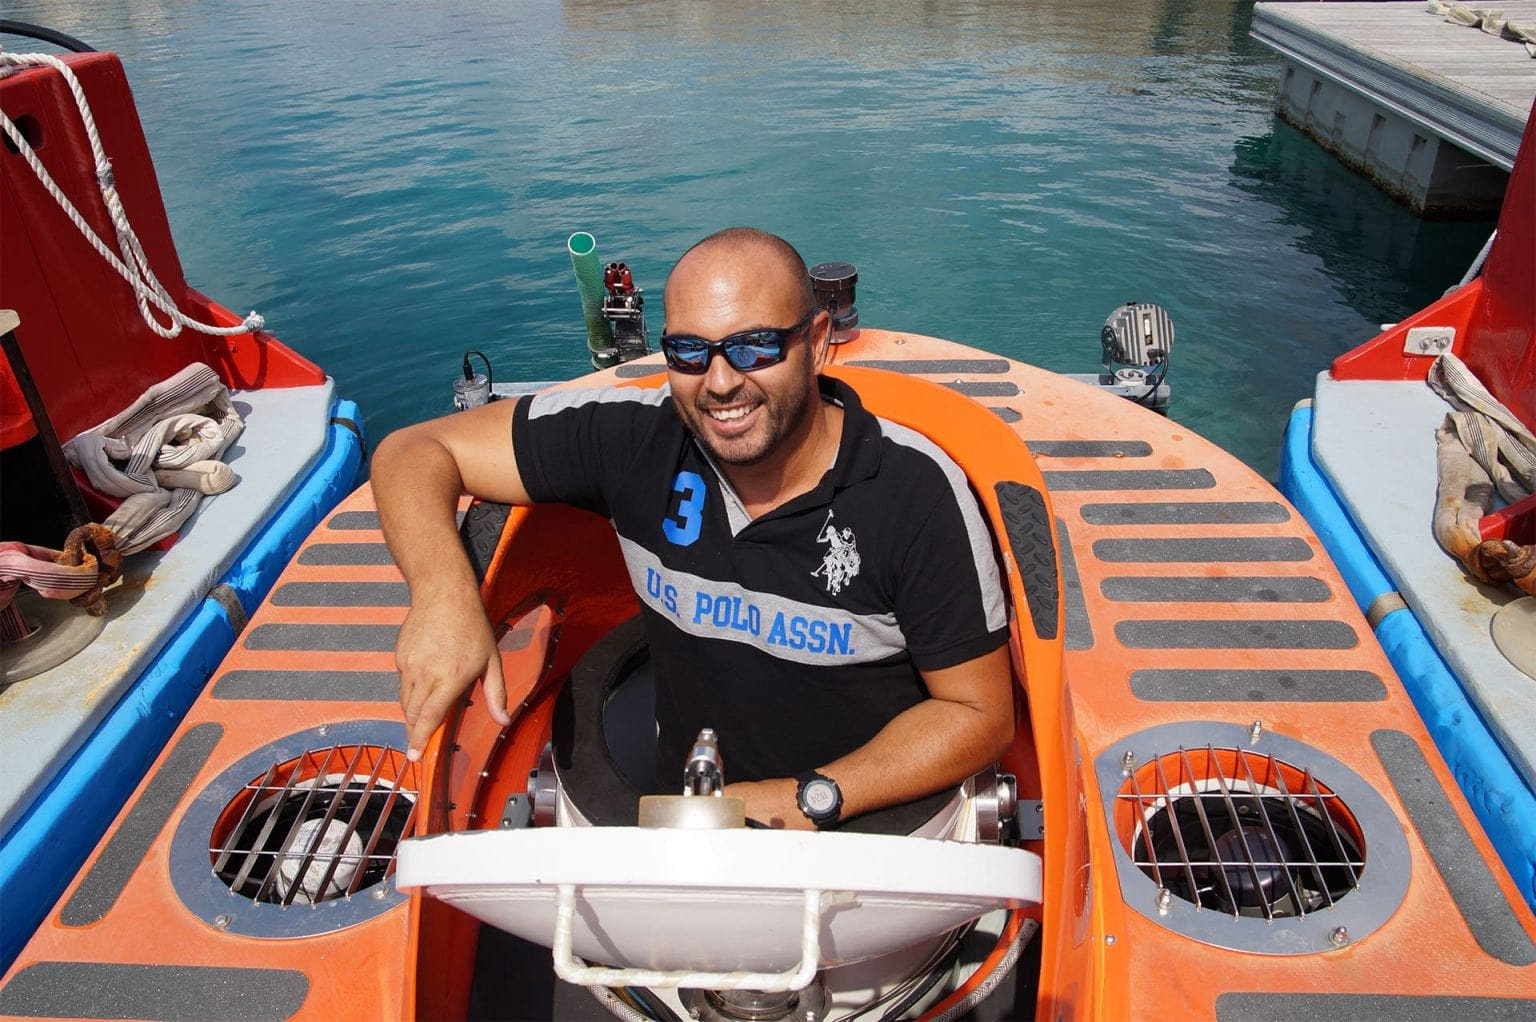 Happy tourist going in the submarine, looking at the camera, smiling exciting for the amazing experience in Curaçao.